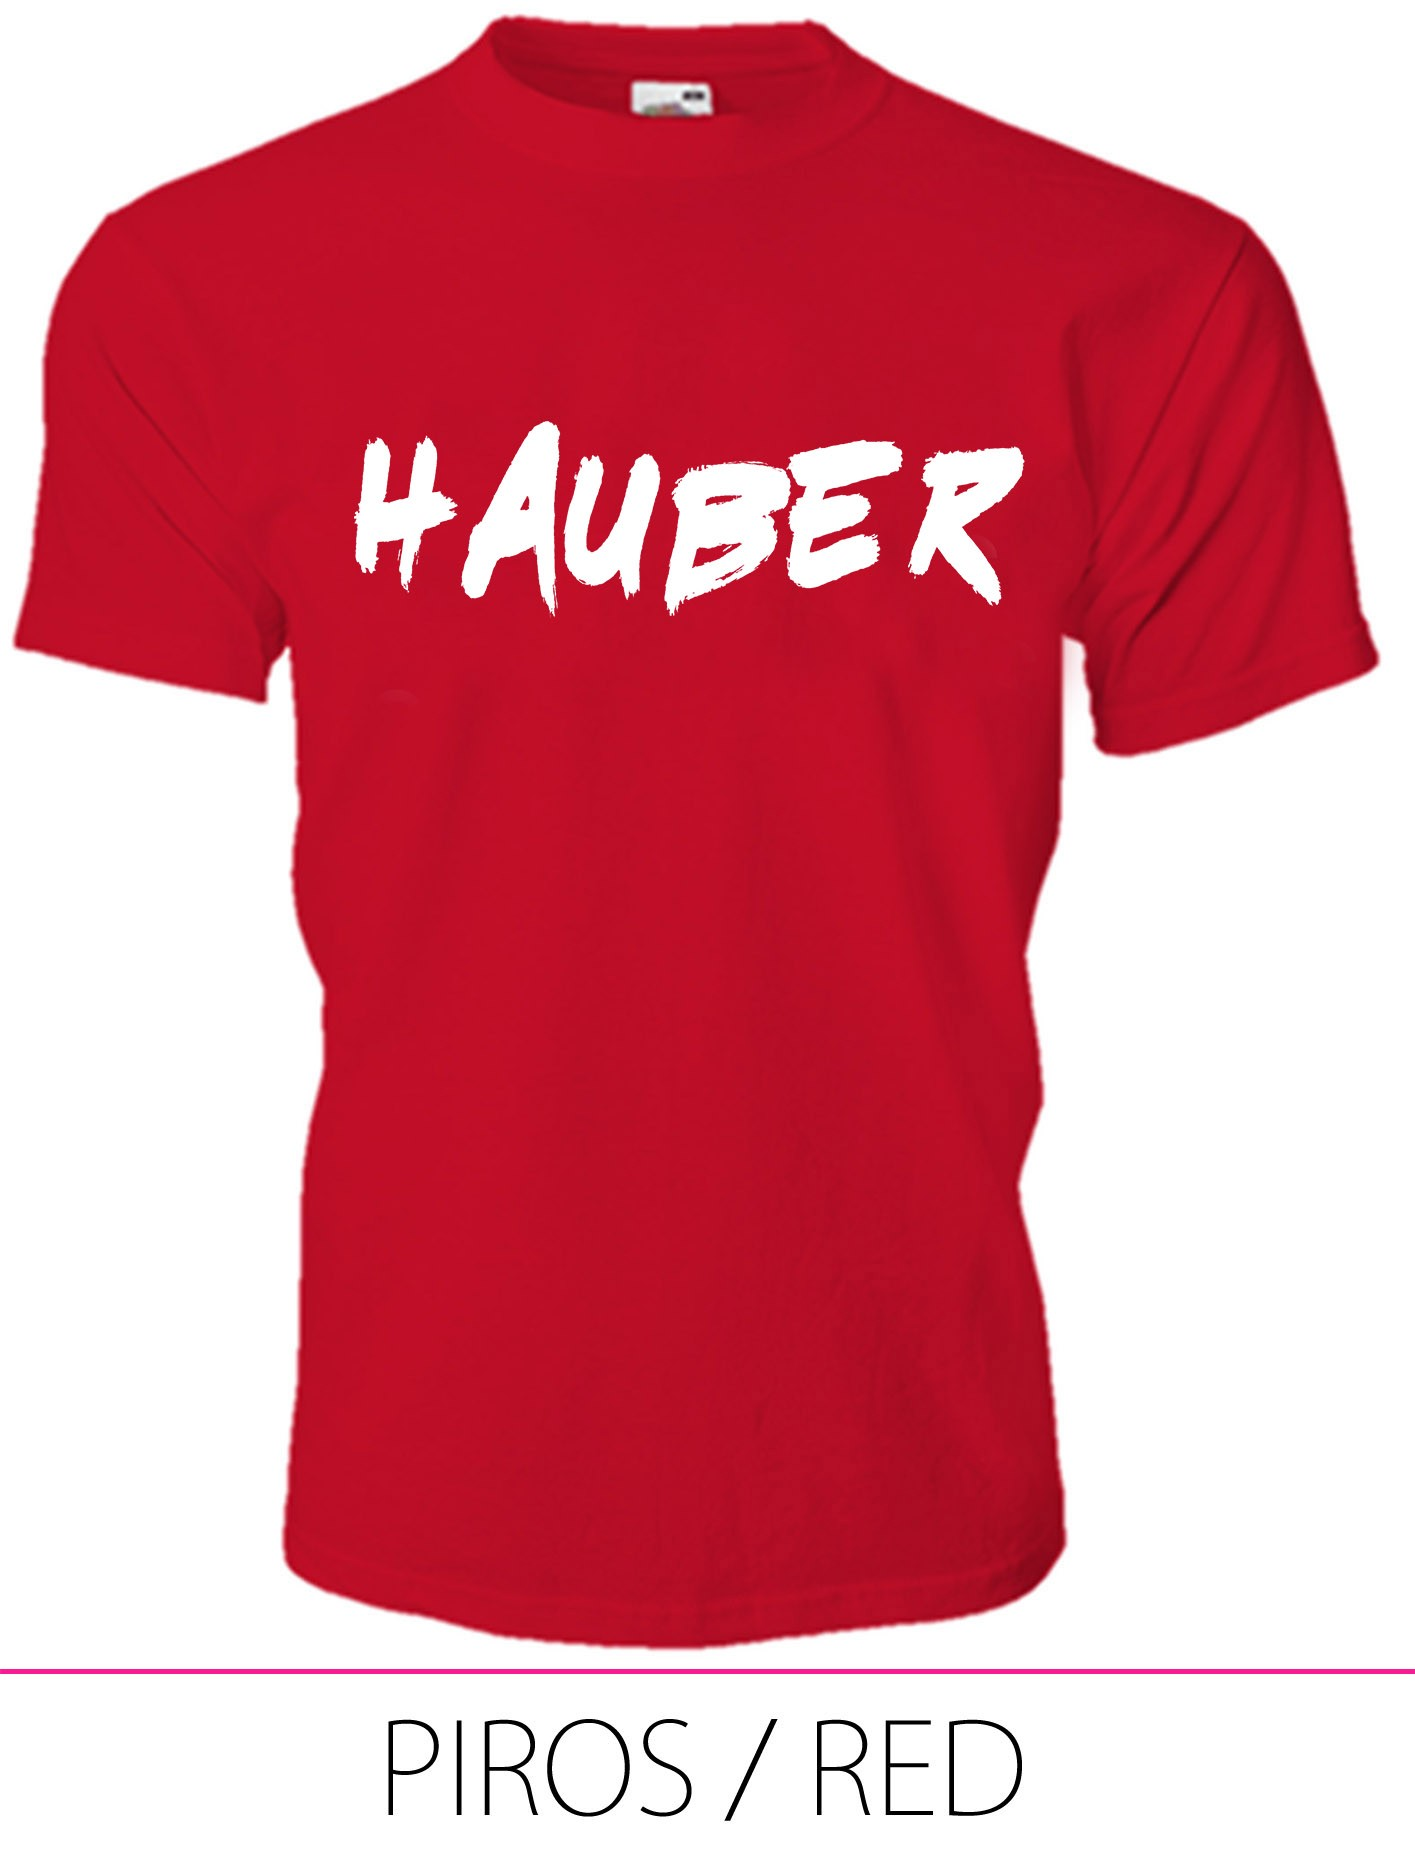 KIDS CREW NECK T-SHIRT HAUBER RED